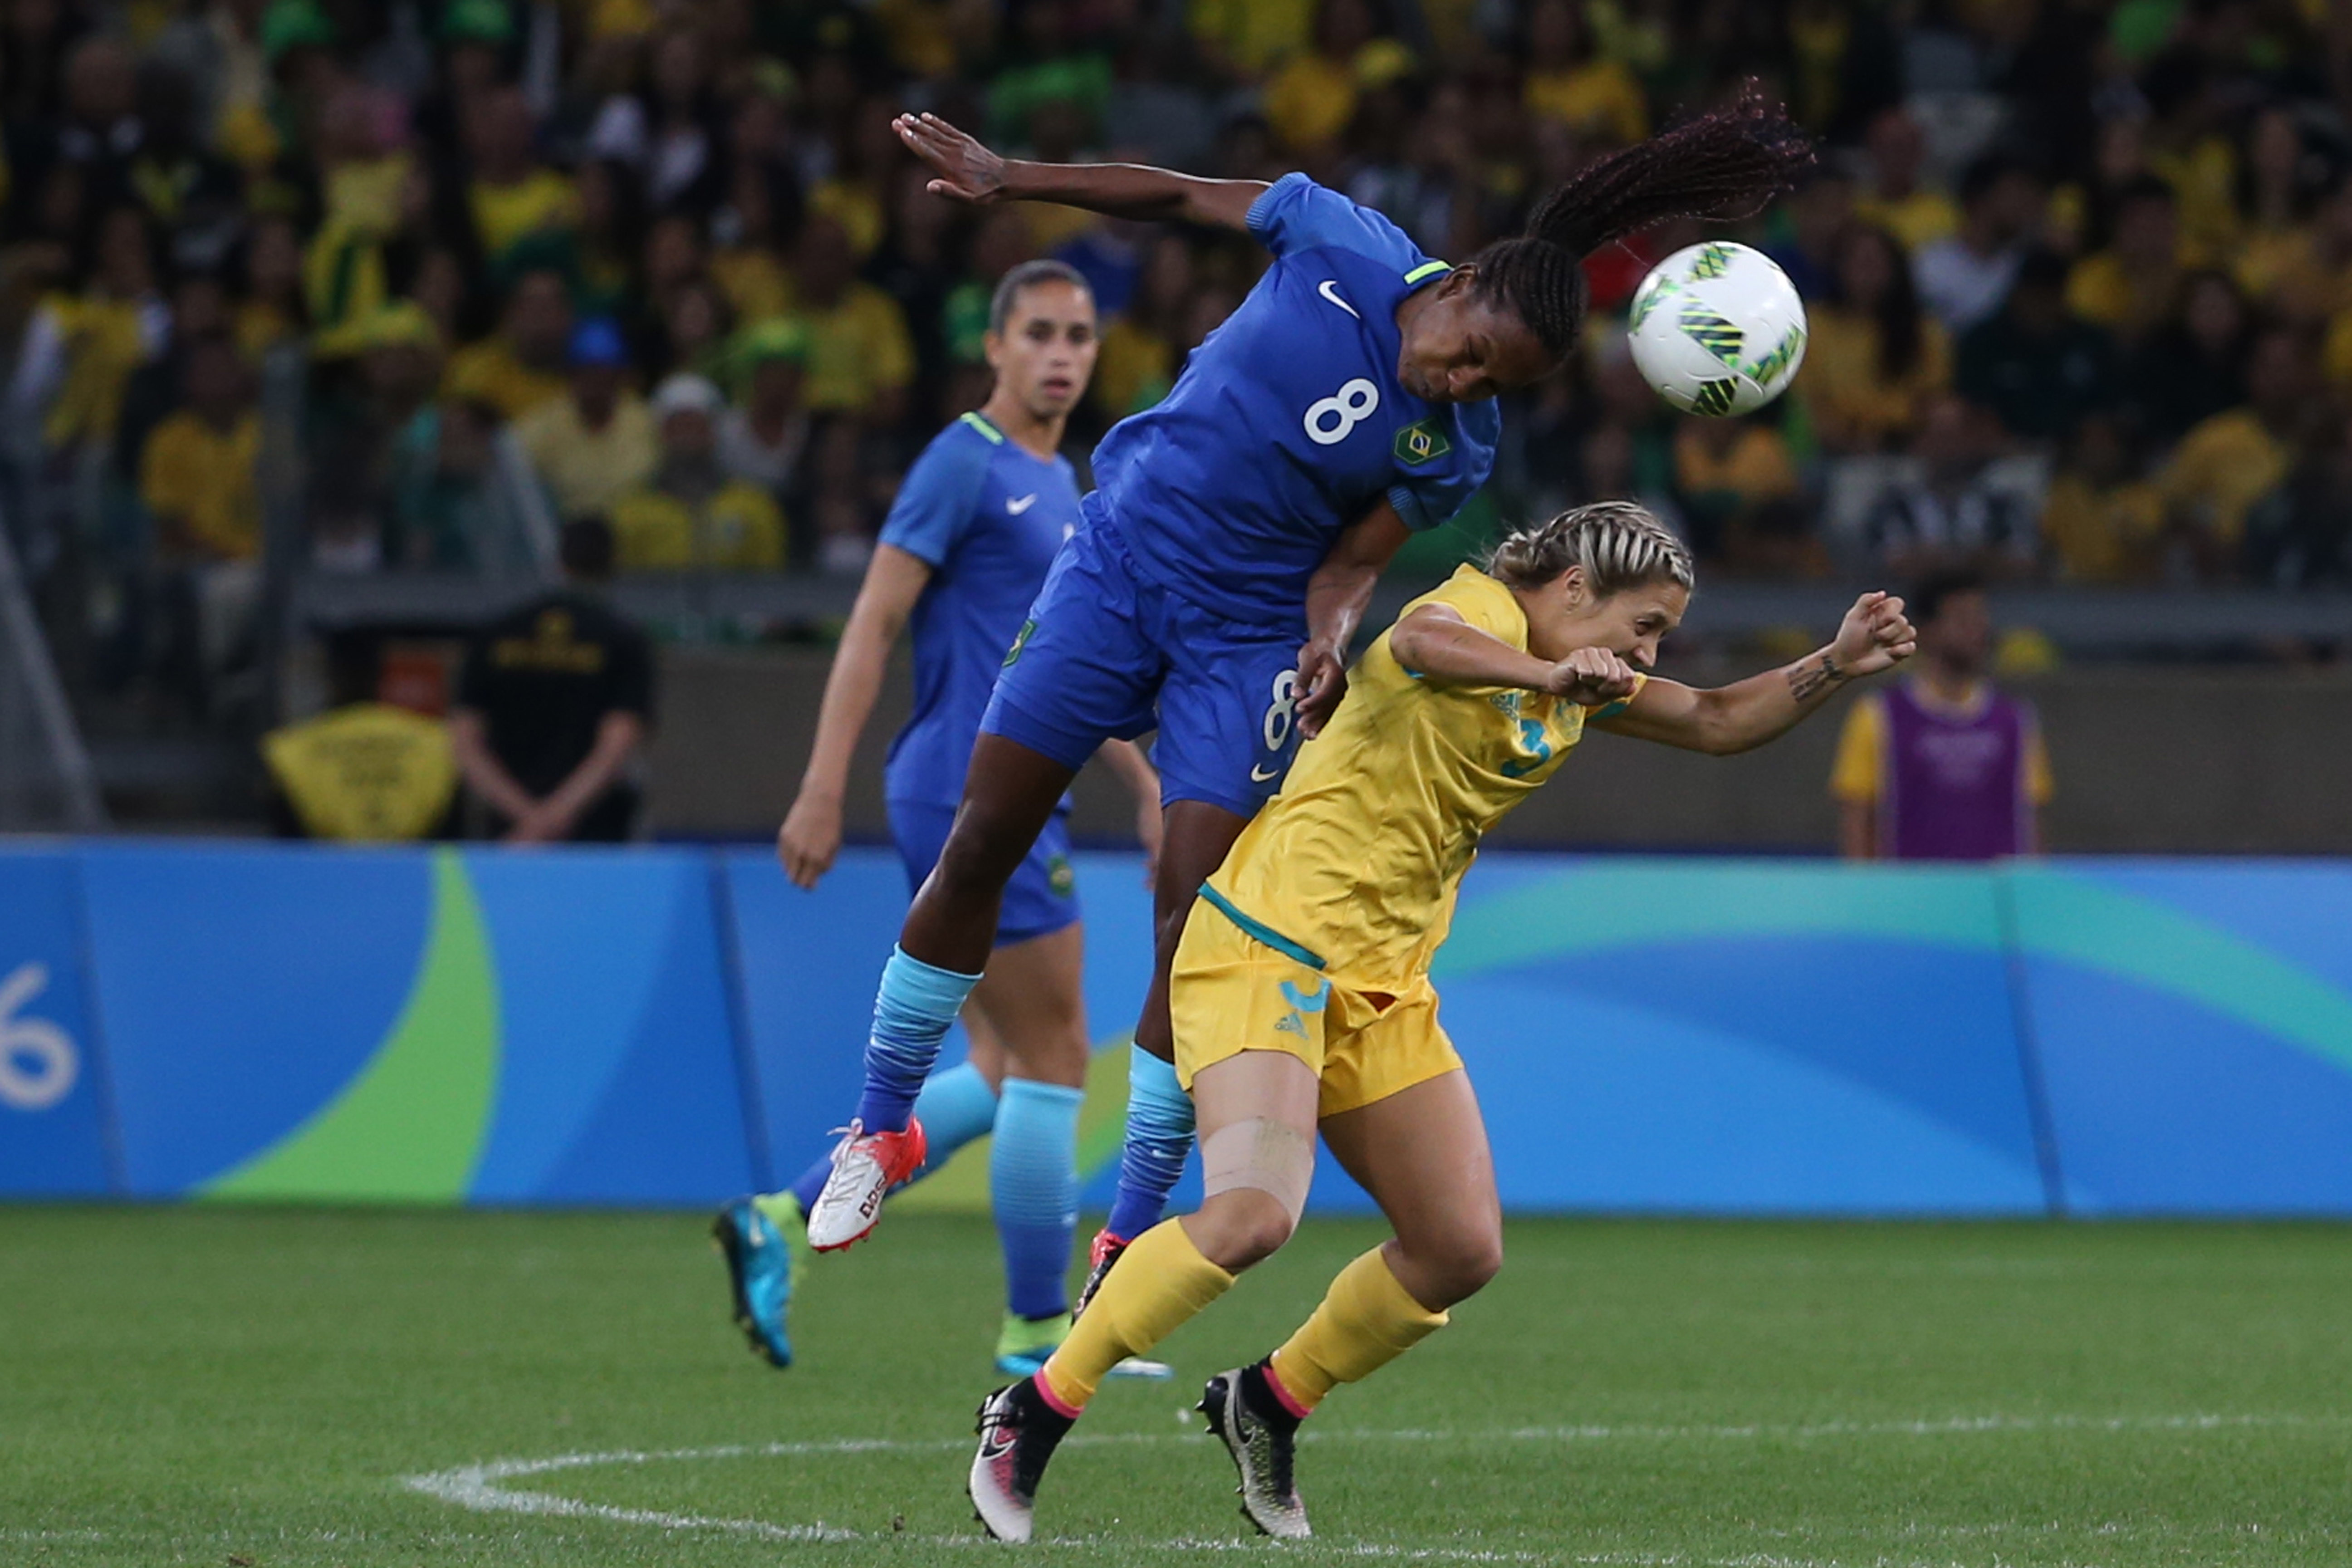 Brazil's Formiga, left, jumps for a header over Australia's Katrina Gorry during a quarter-final match of the women's Olympic football tournament between Brazil and Australia at the Mineirao Stadium in Belo Horizonte, Brazil, Friday Aug. 12, 2016. (AP Pho